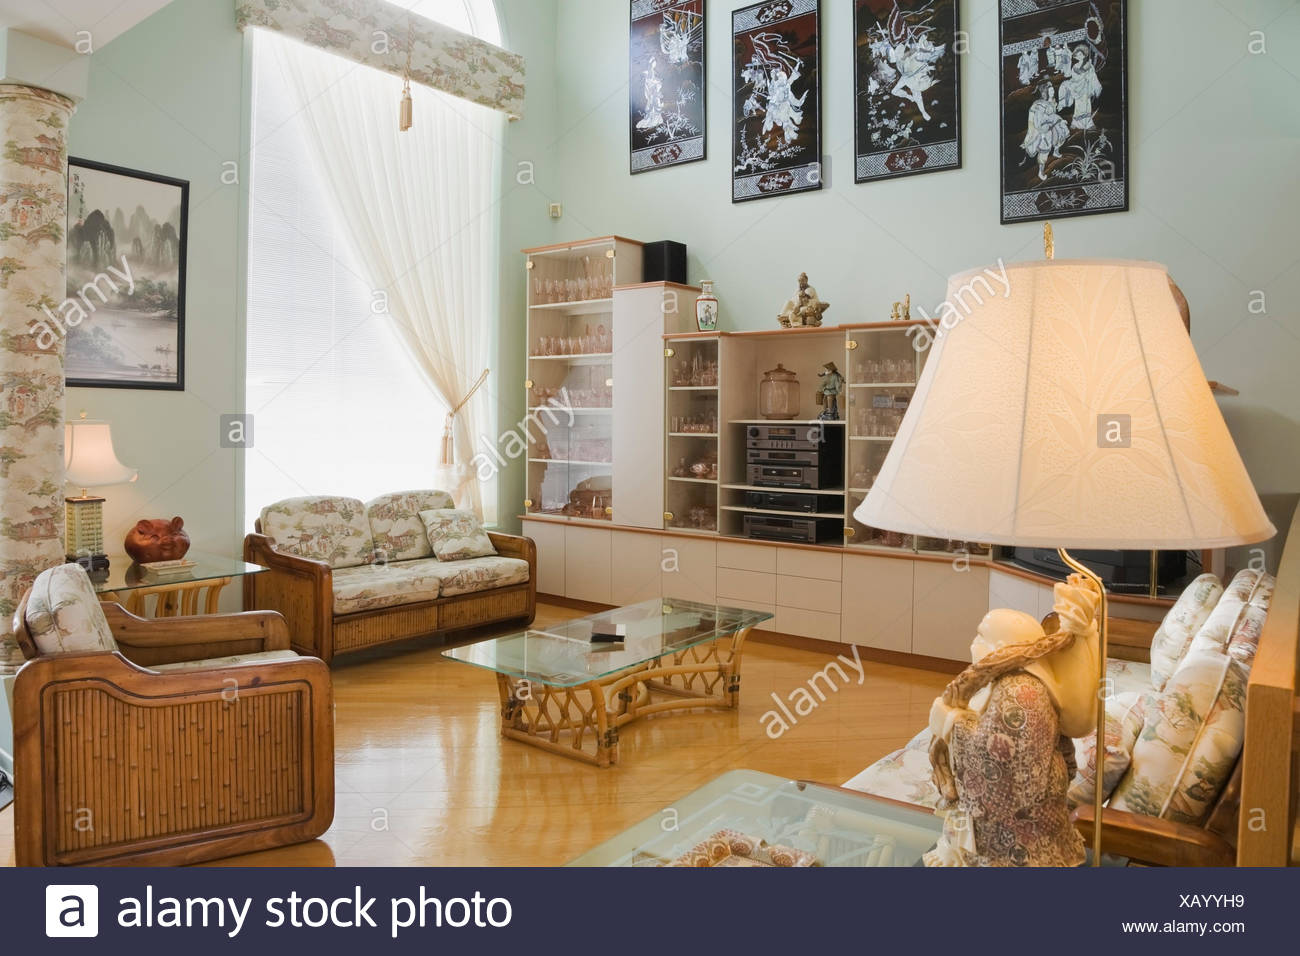 Chinese Style Furniture And Furnishings In A Modern Cottage Style